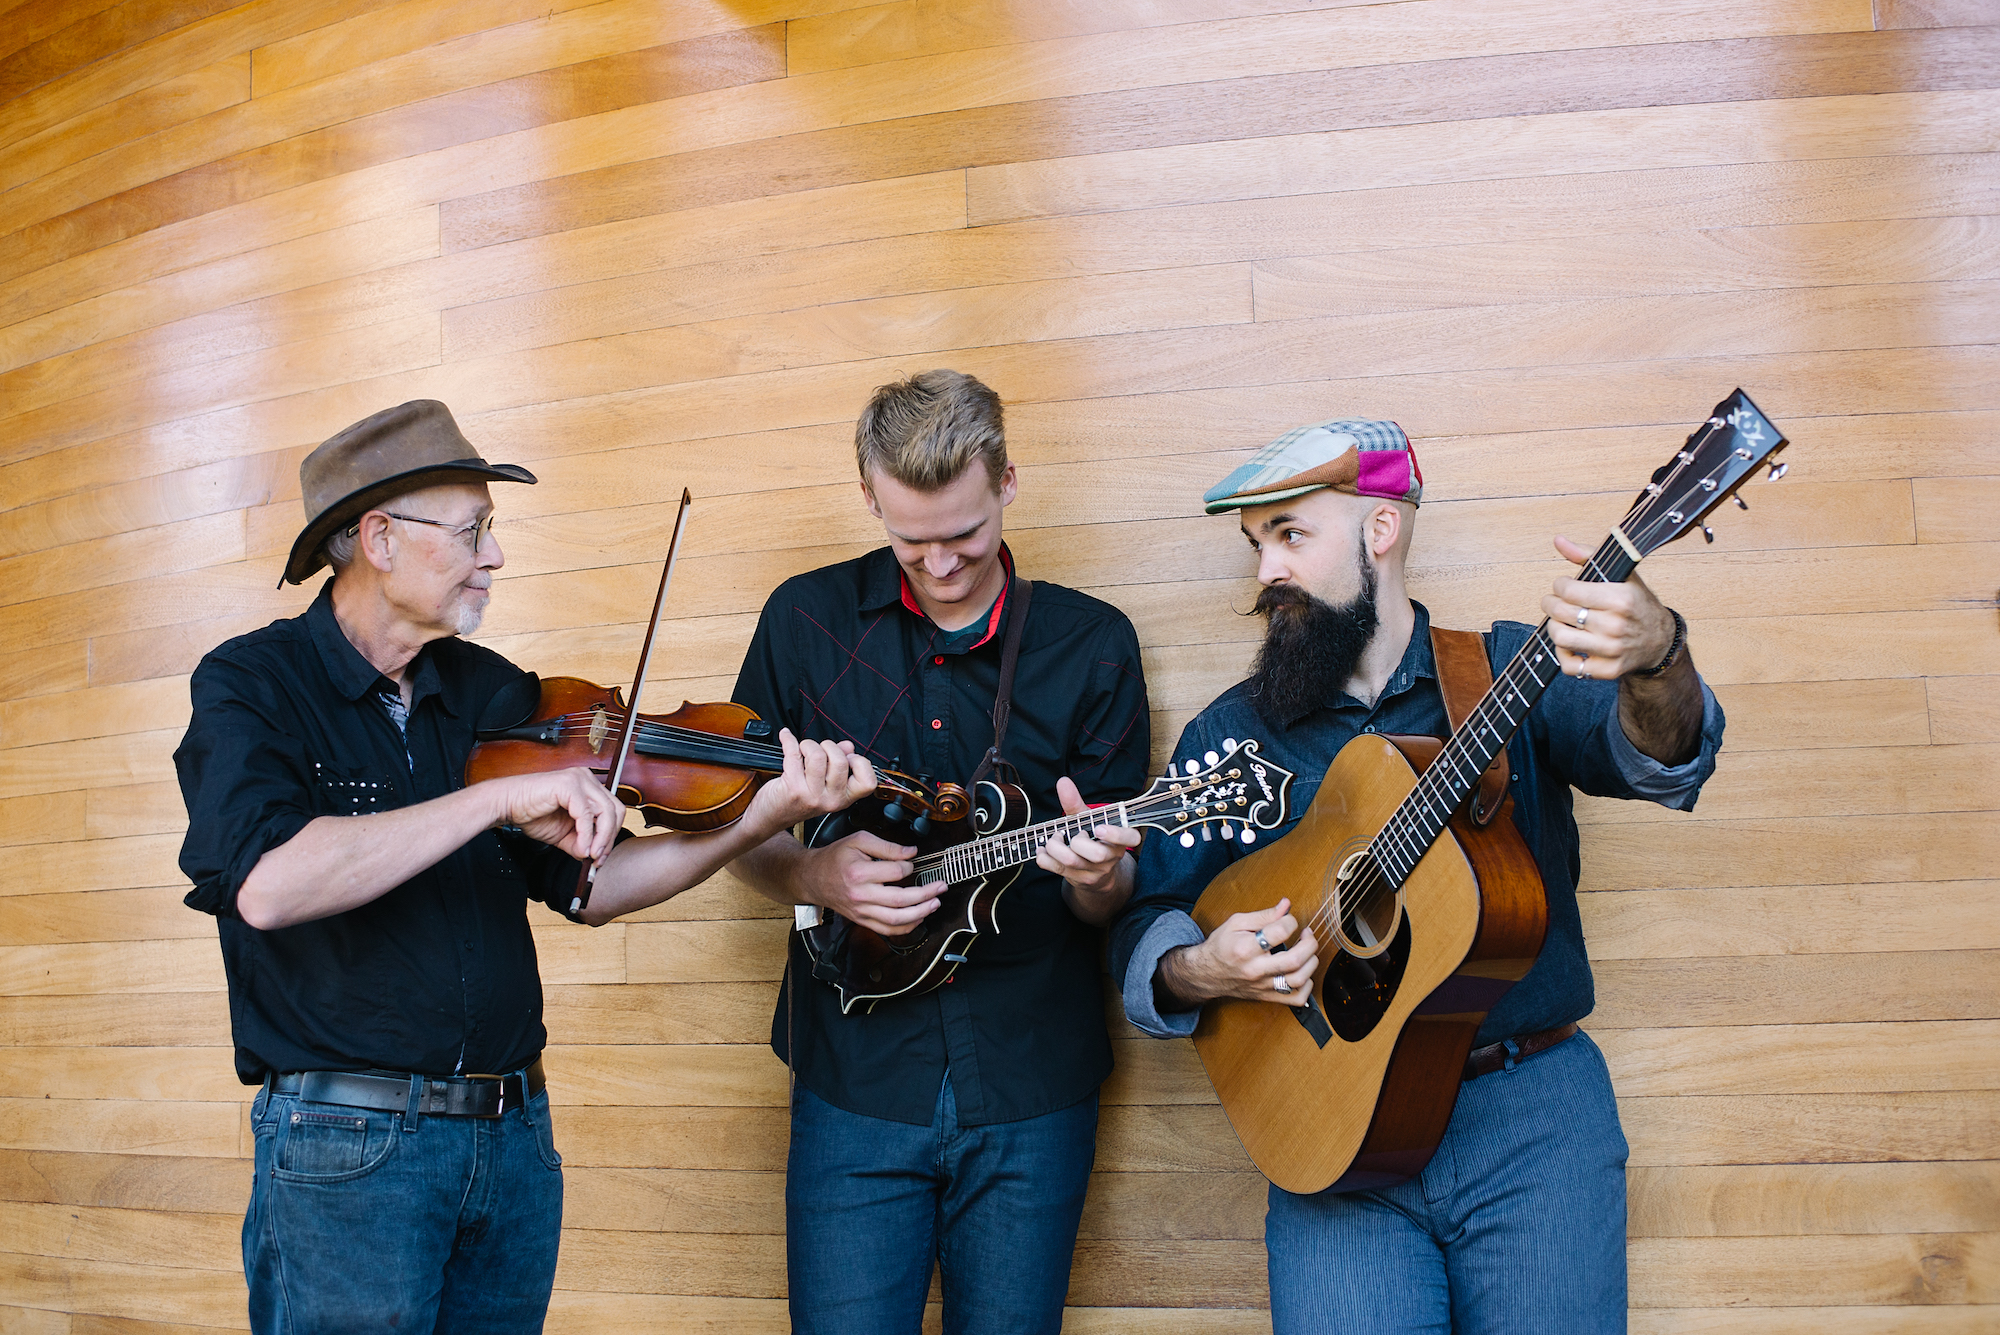 Pete's Posse Doesn't Play Bluegrass (Though You Might Think They Do)